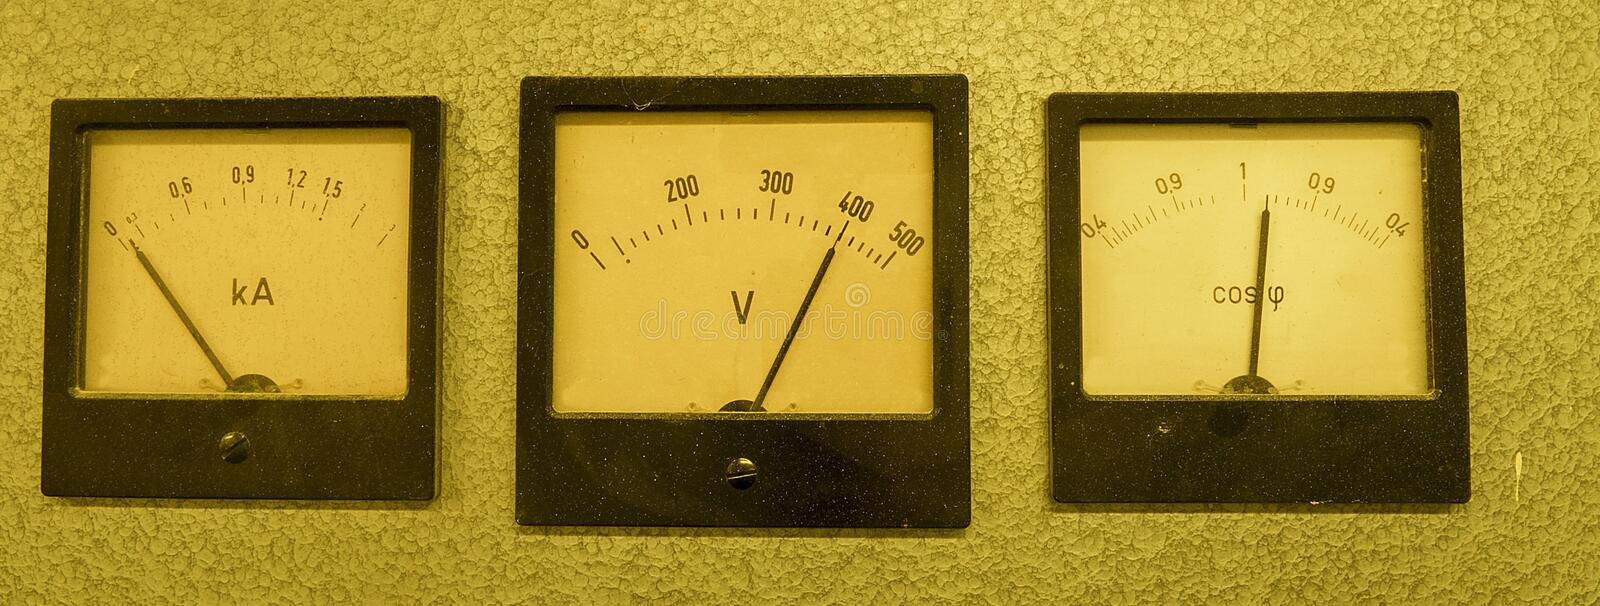 Three old analog instruments - Power factor meter, voltmeter and ampere meter isolated on grey background royalty free stock images